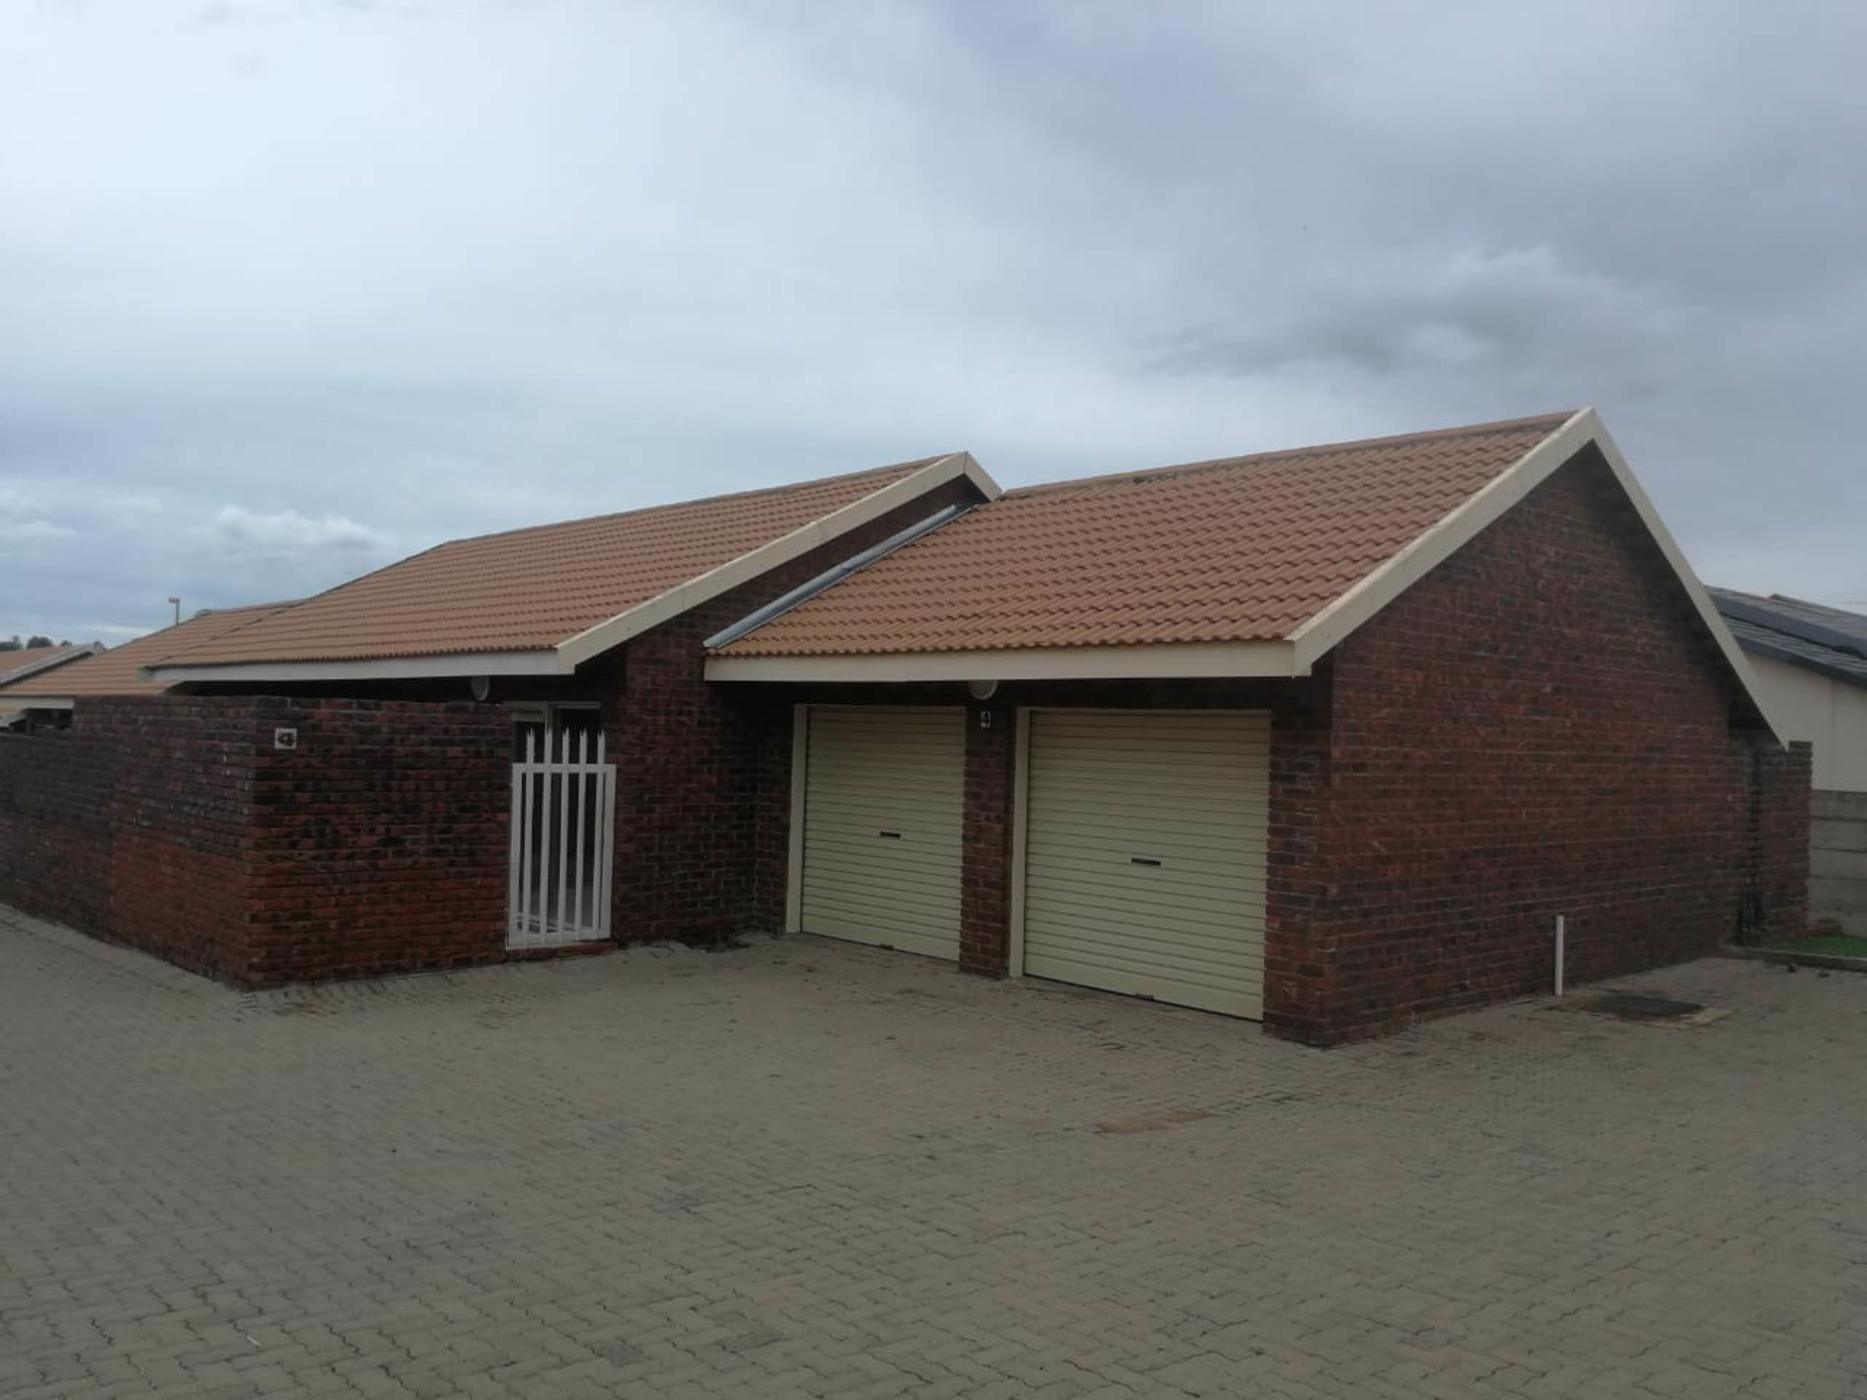 https://listing.pamgolding.co.za/images/properties/201902/1273777/H/1273777_H_1.jpg